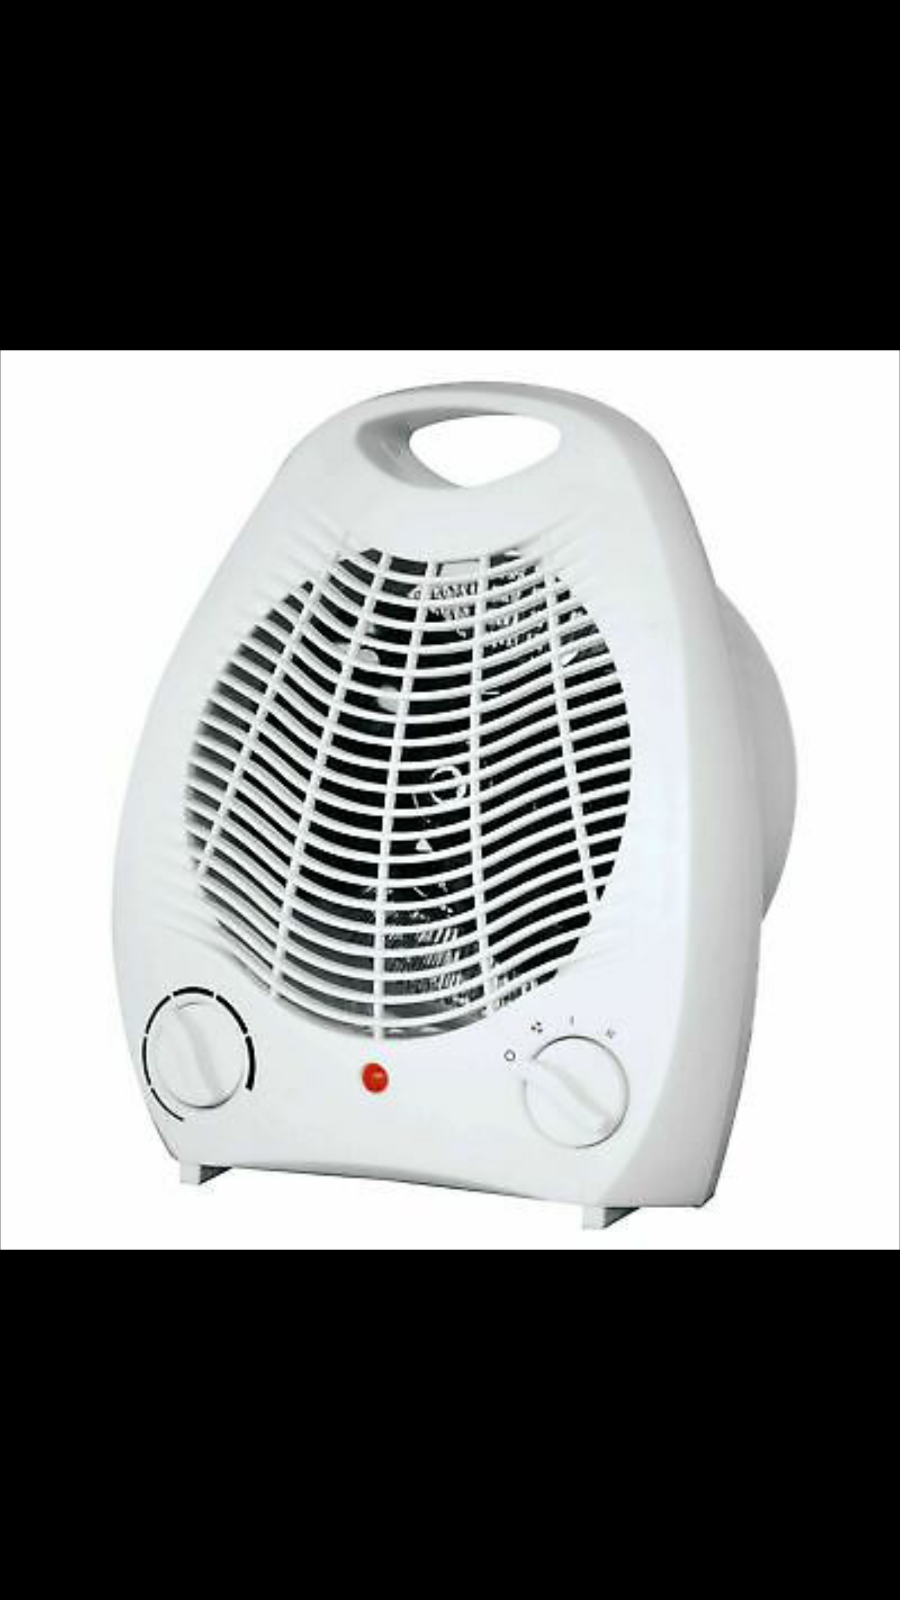 THERMO White 2000W Upright Fan Heater